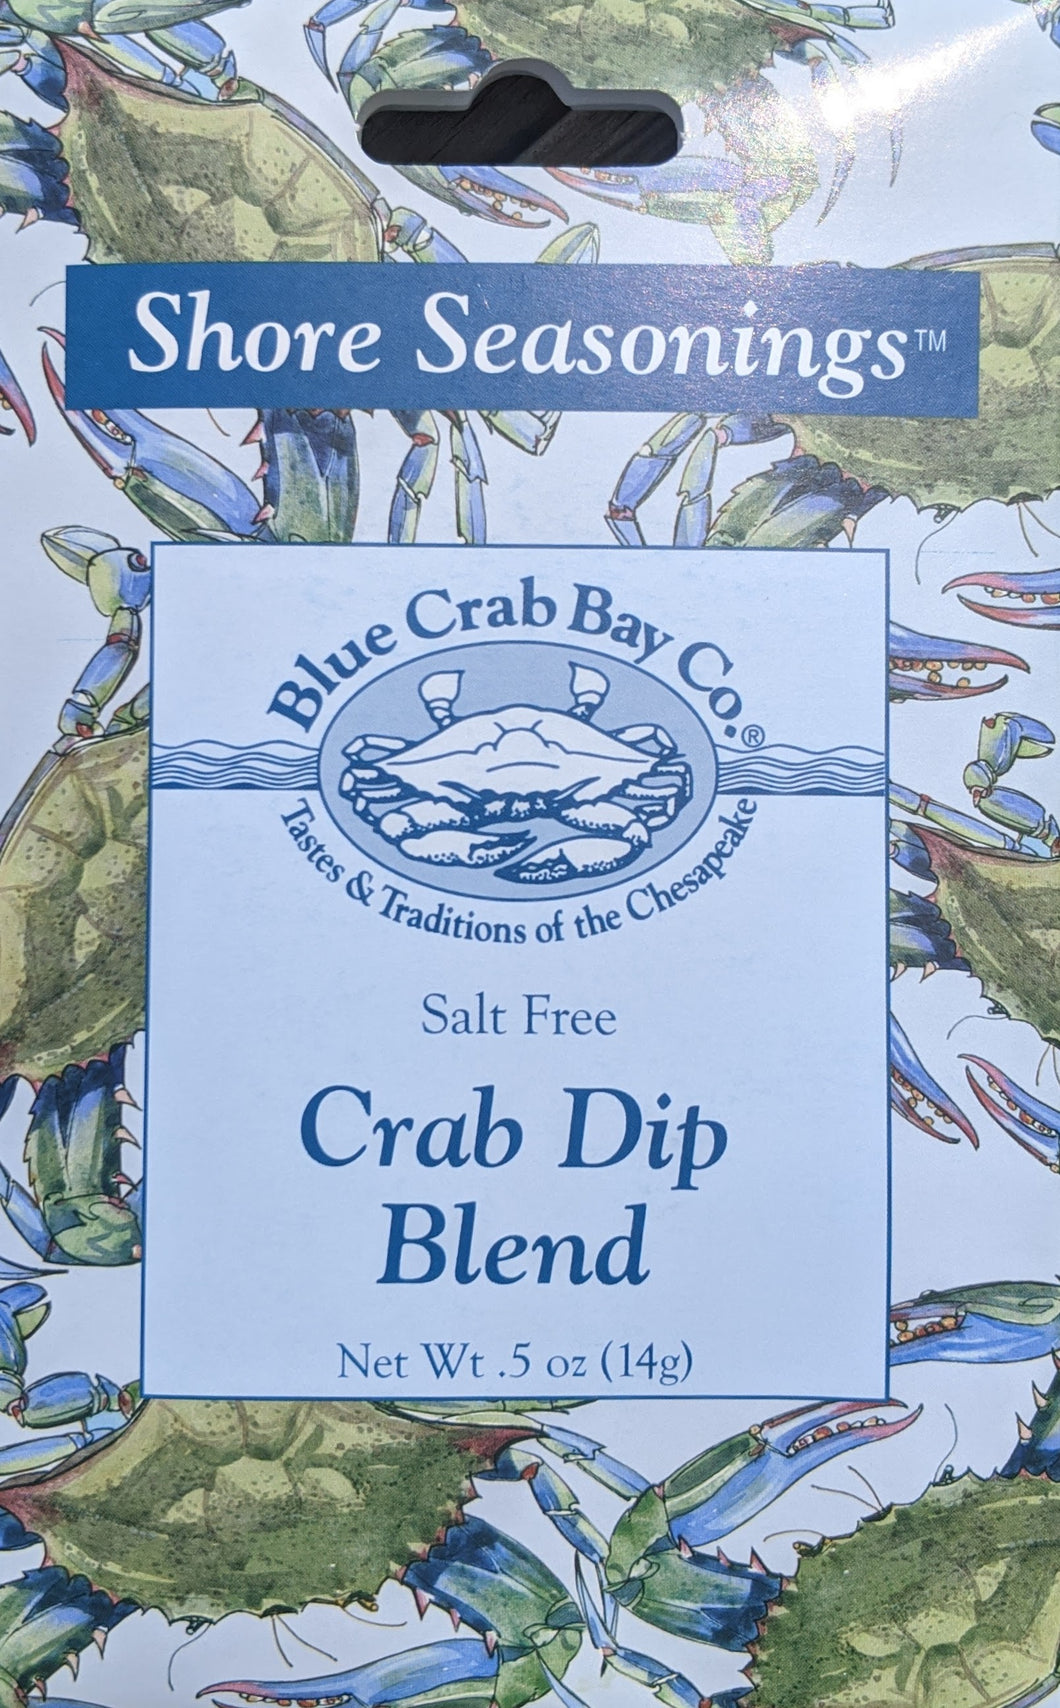 Shore Seasonings - Crab Dip Blend